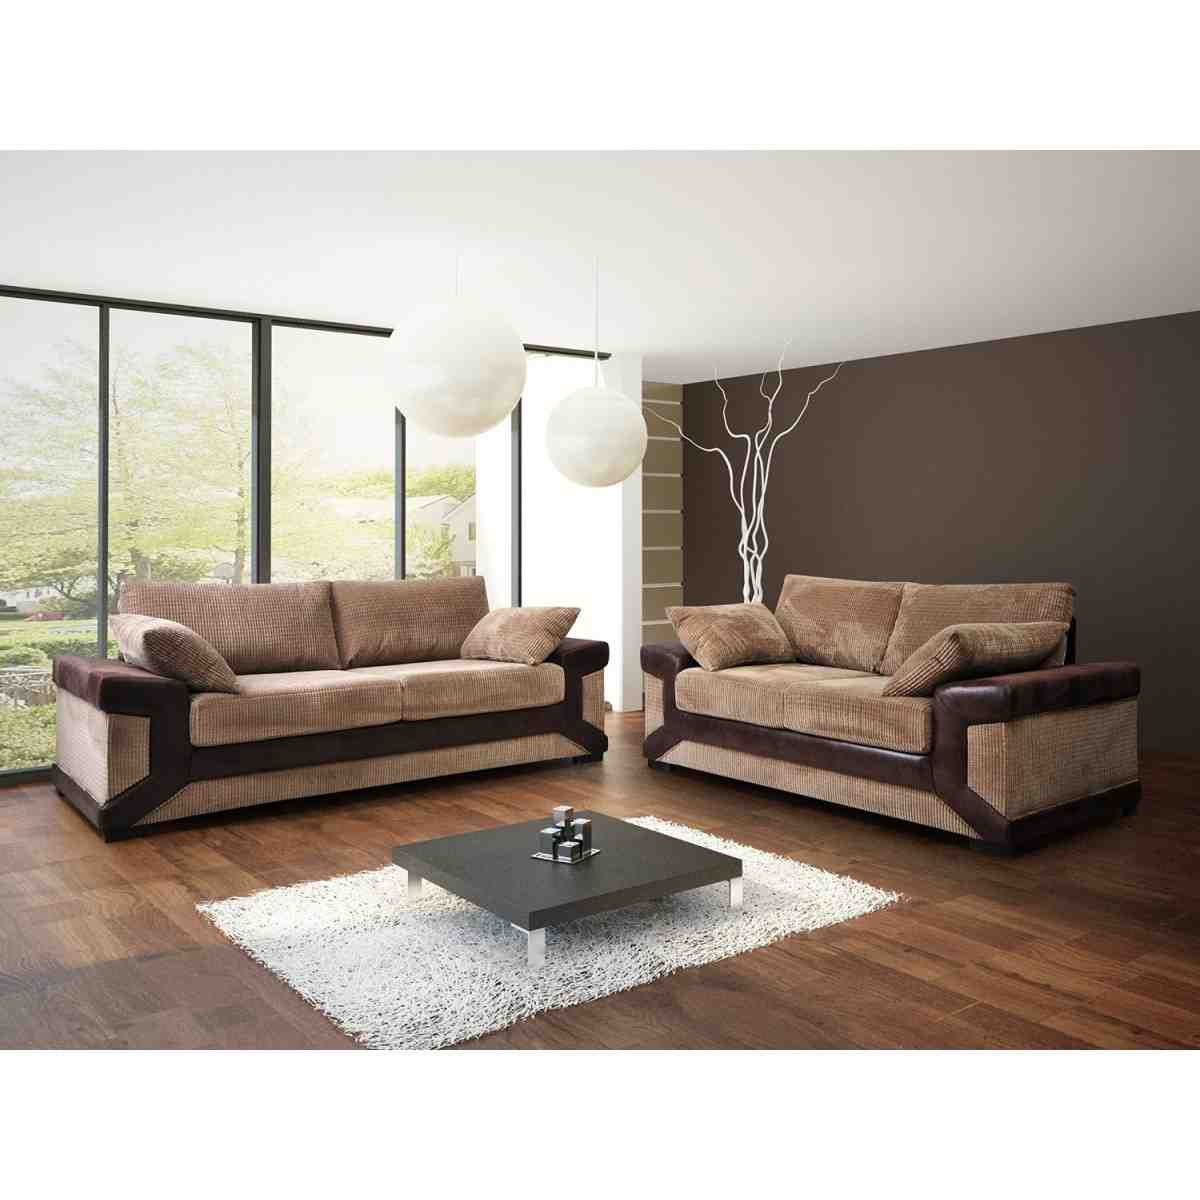 3 2 Seater Sofas Sale Decor Ideasdecor Ideas